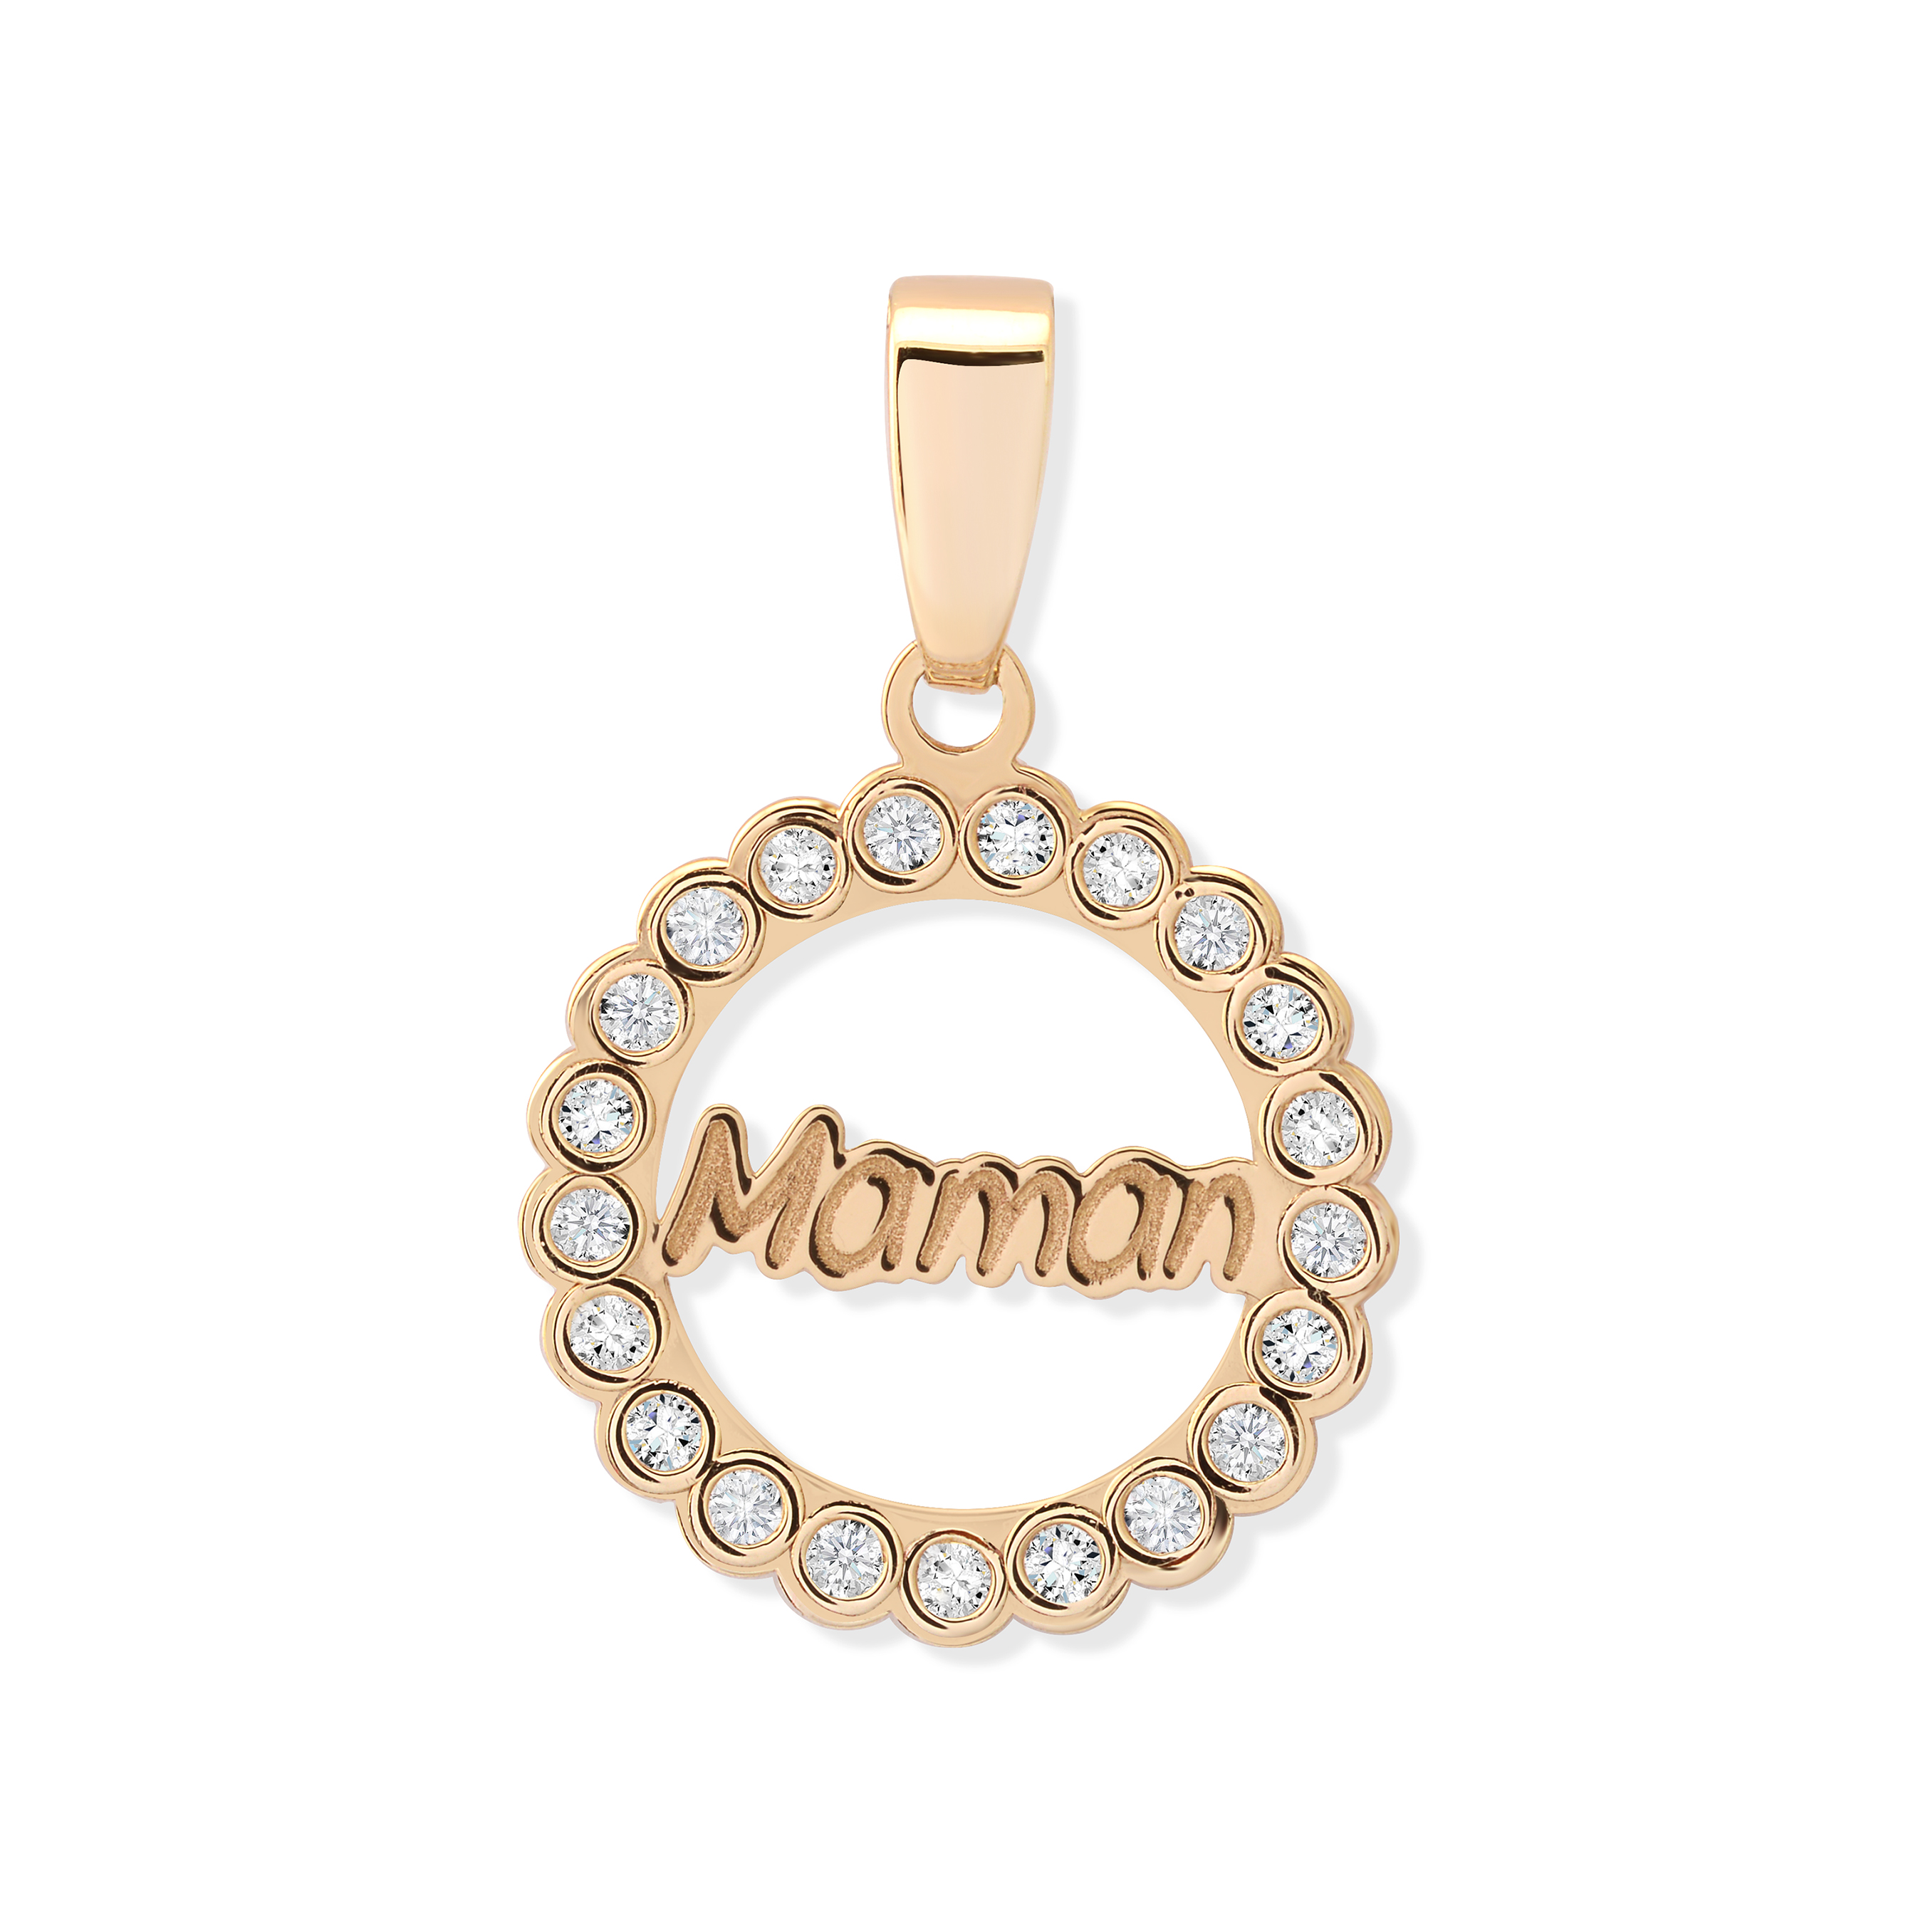 ''Maman'' pendant in 10K yellow gold with cubic zirconia